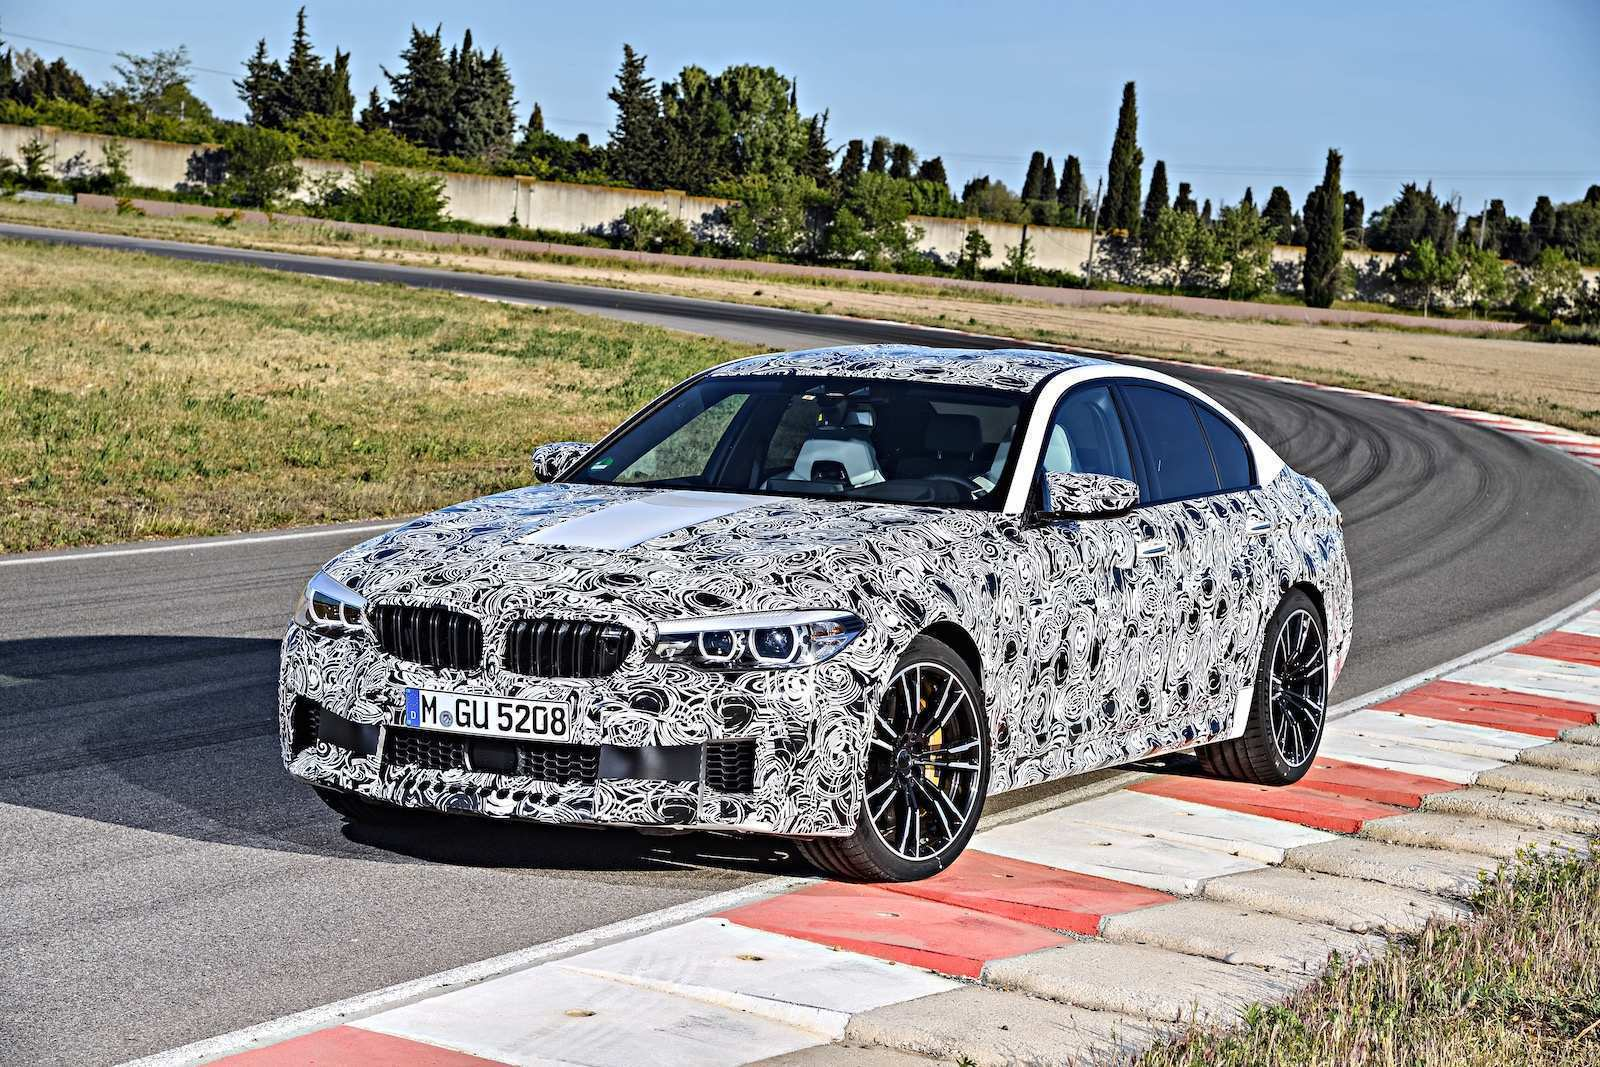 36 New 2020 BMW M5 Xdrive Awd Pictures